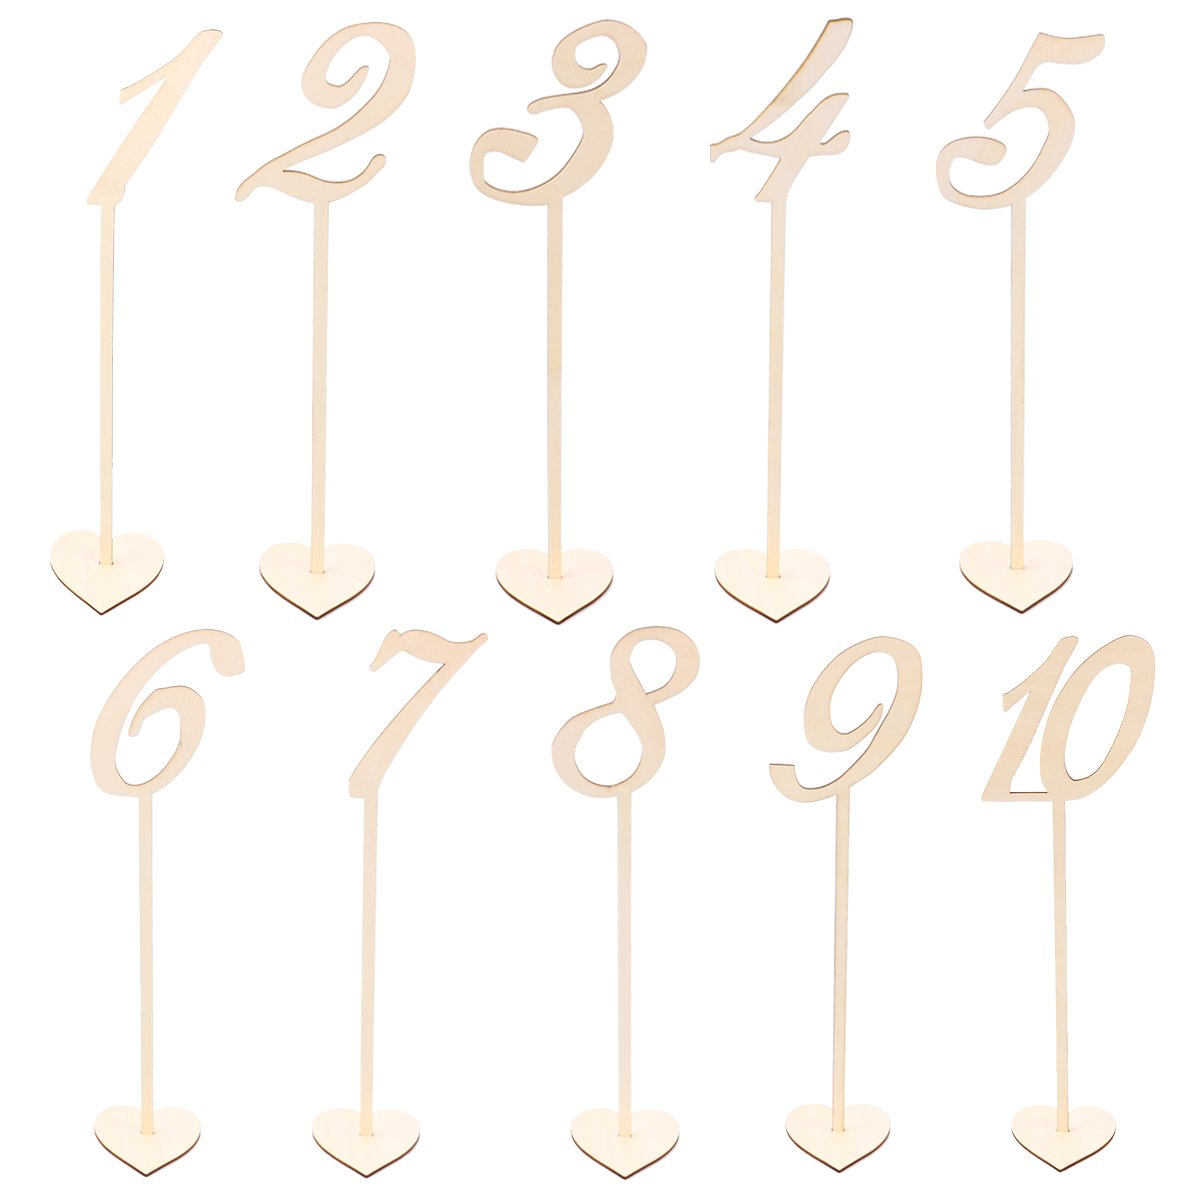 BESTOYARD 10pcs 1-10 Wooden Table Numbers with Holder Base for Rustic Wedding Birthday Party Seat Decoration